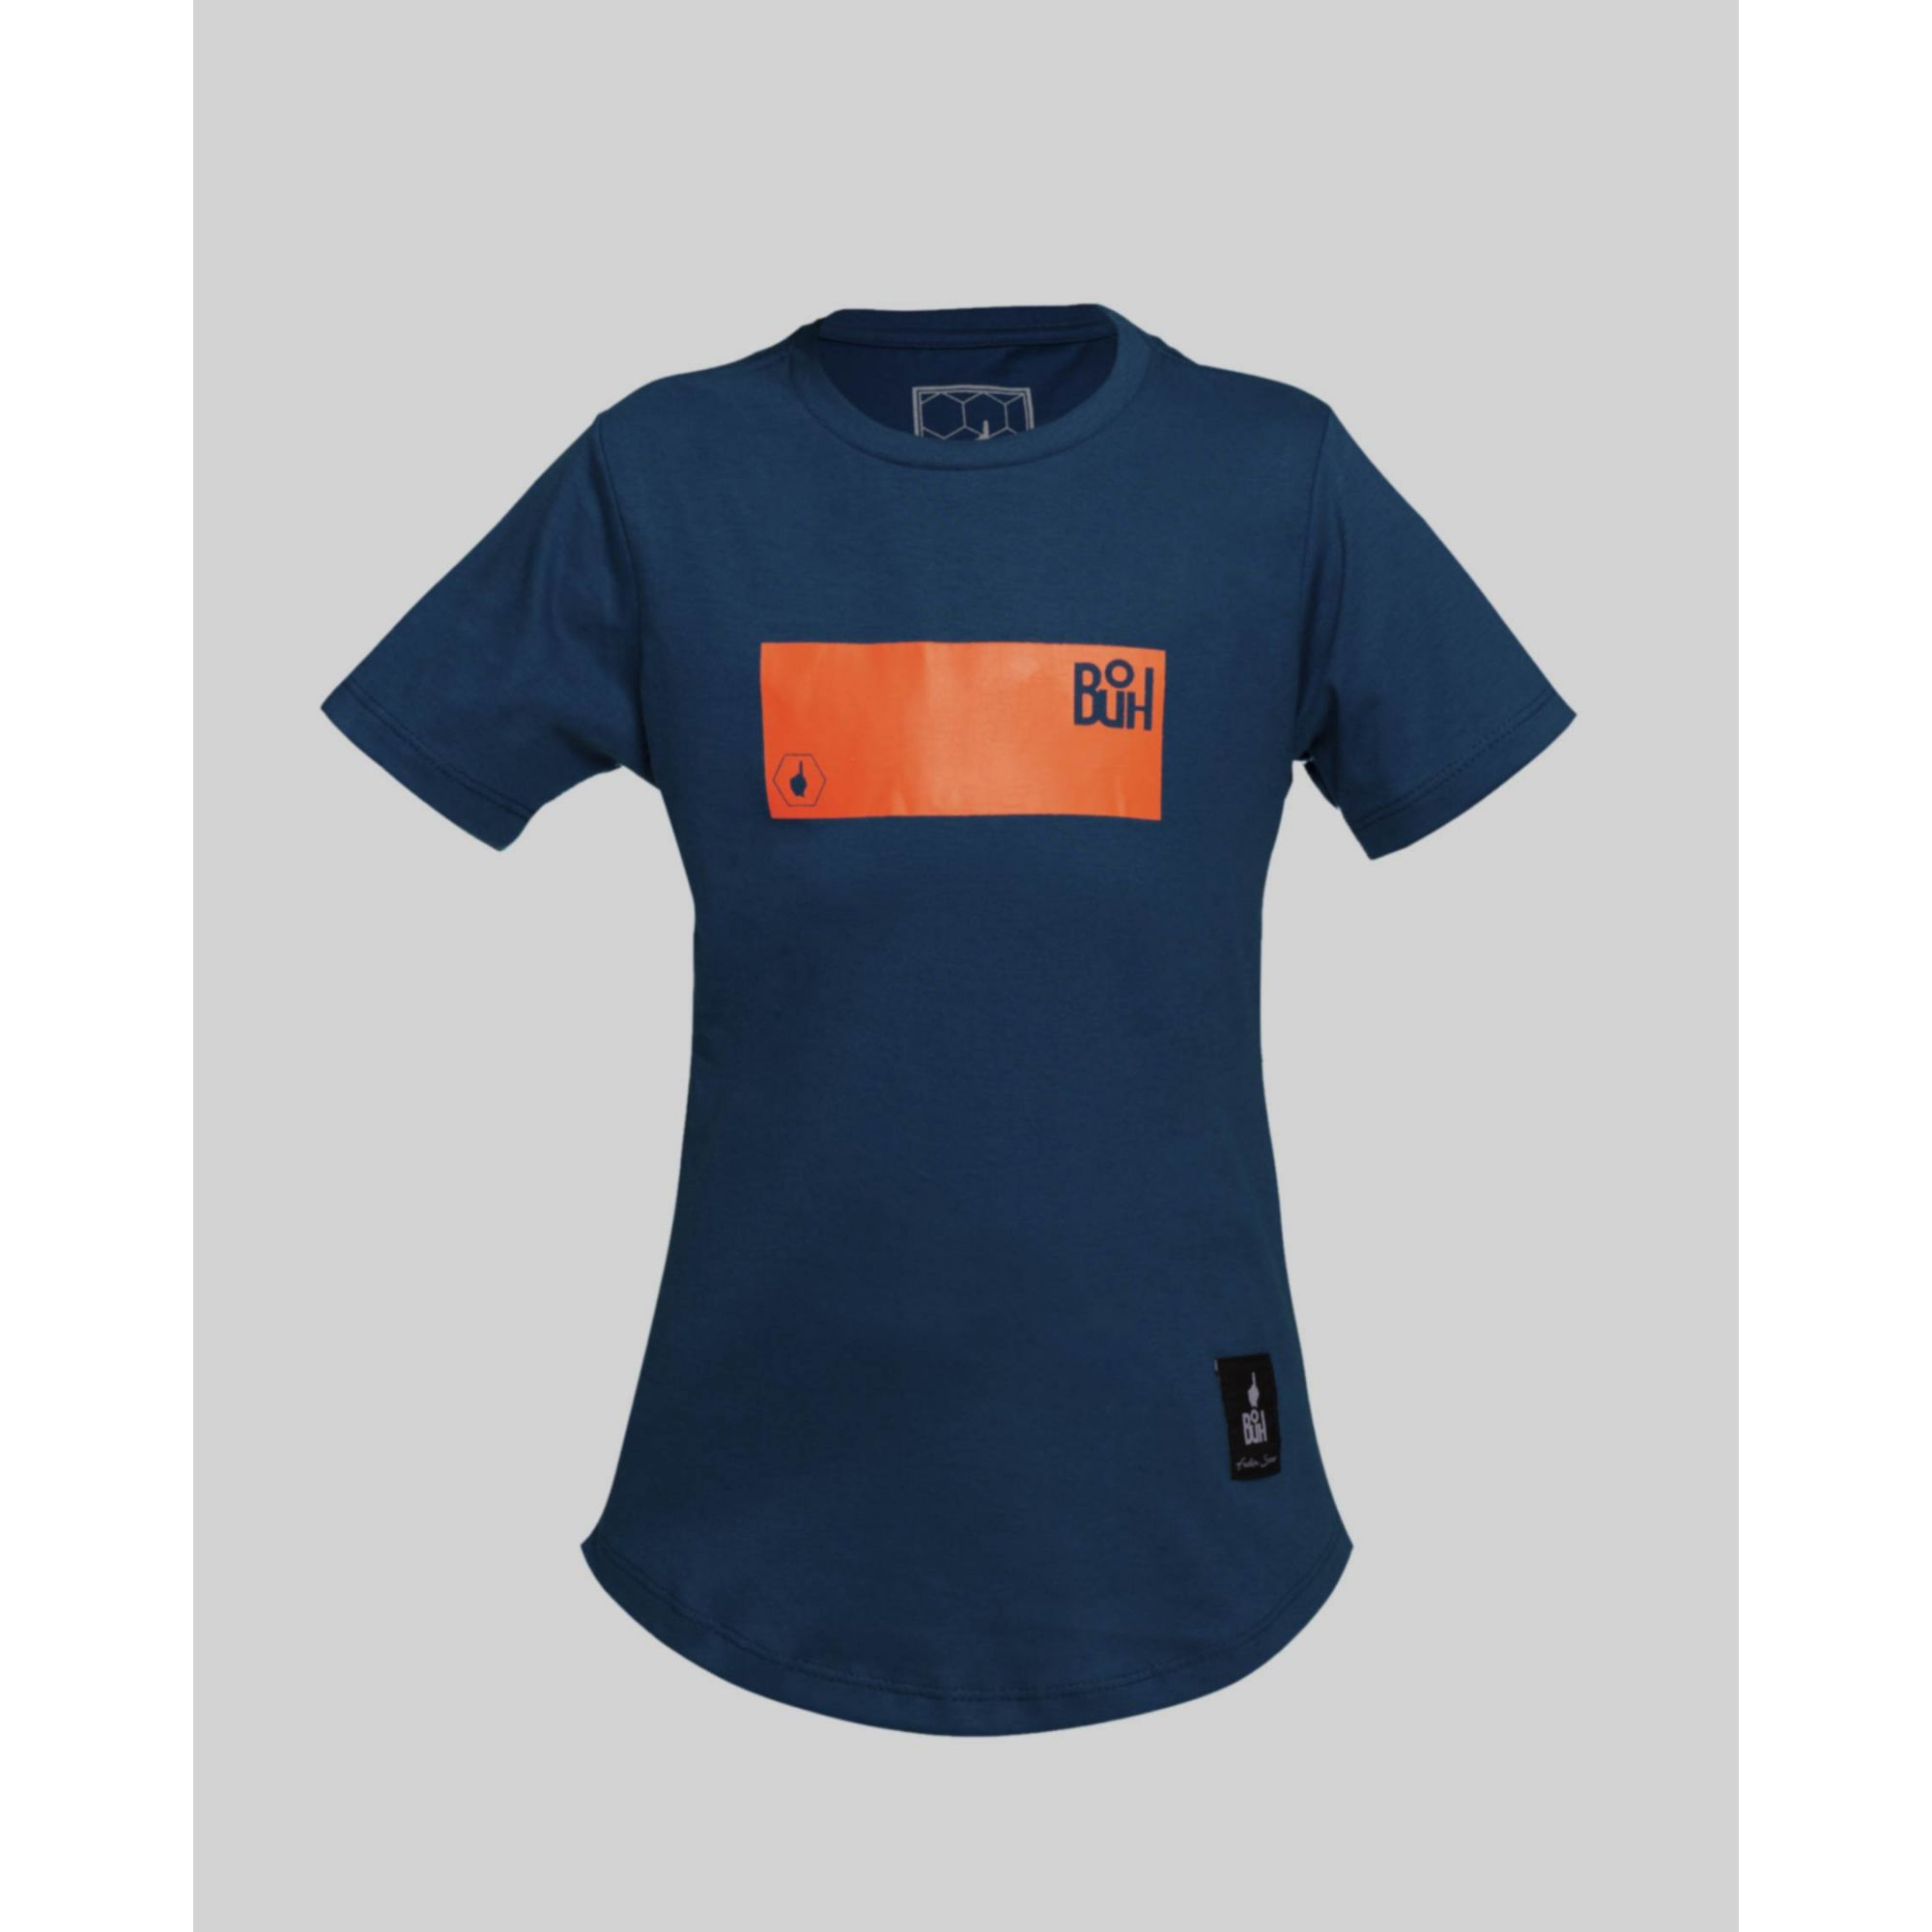 Camiseta Buh Kids Fluor Square Blue